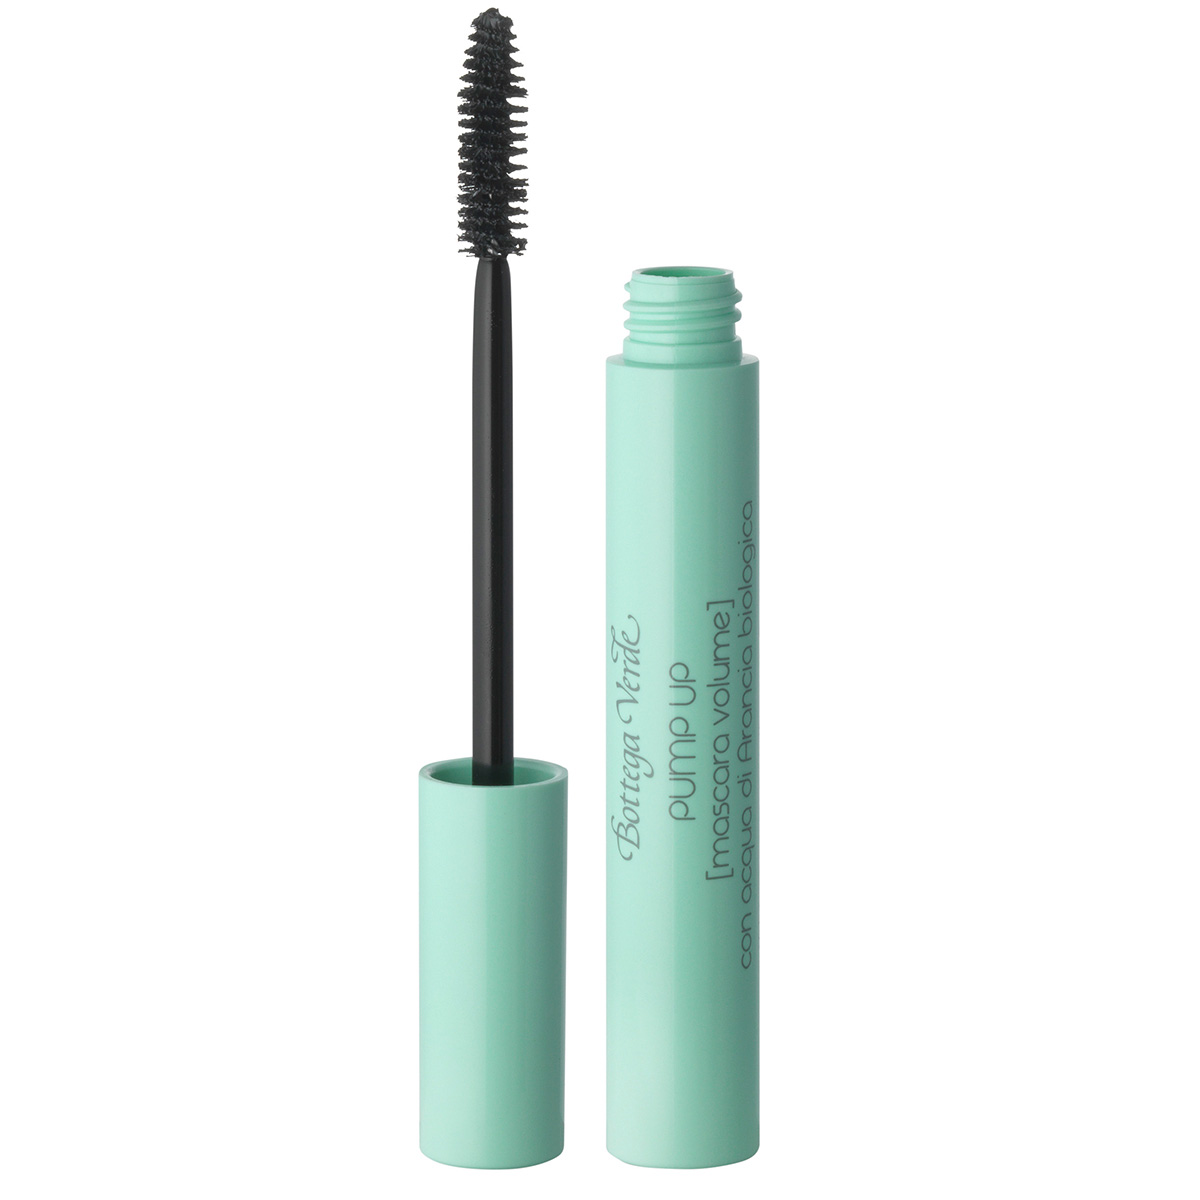 Pump up - Mascara volume - nero liquirizia